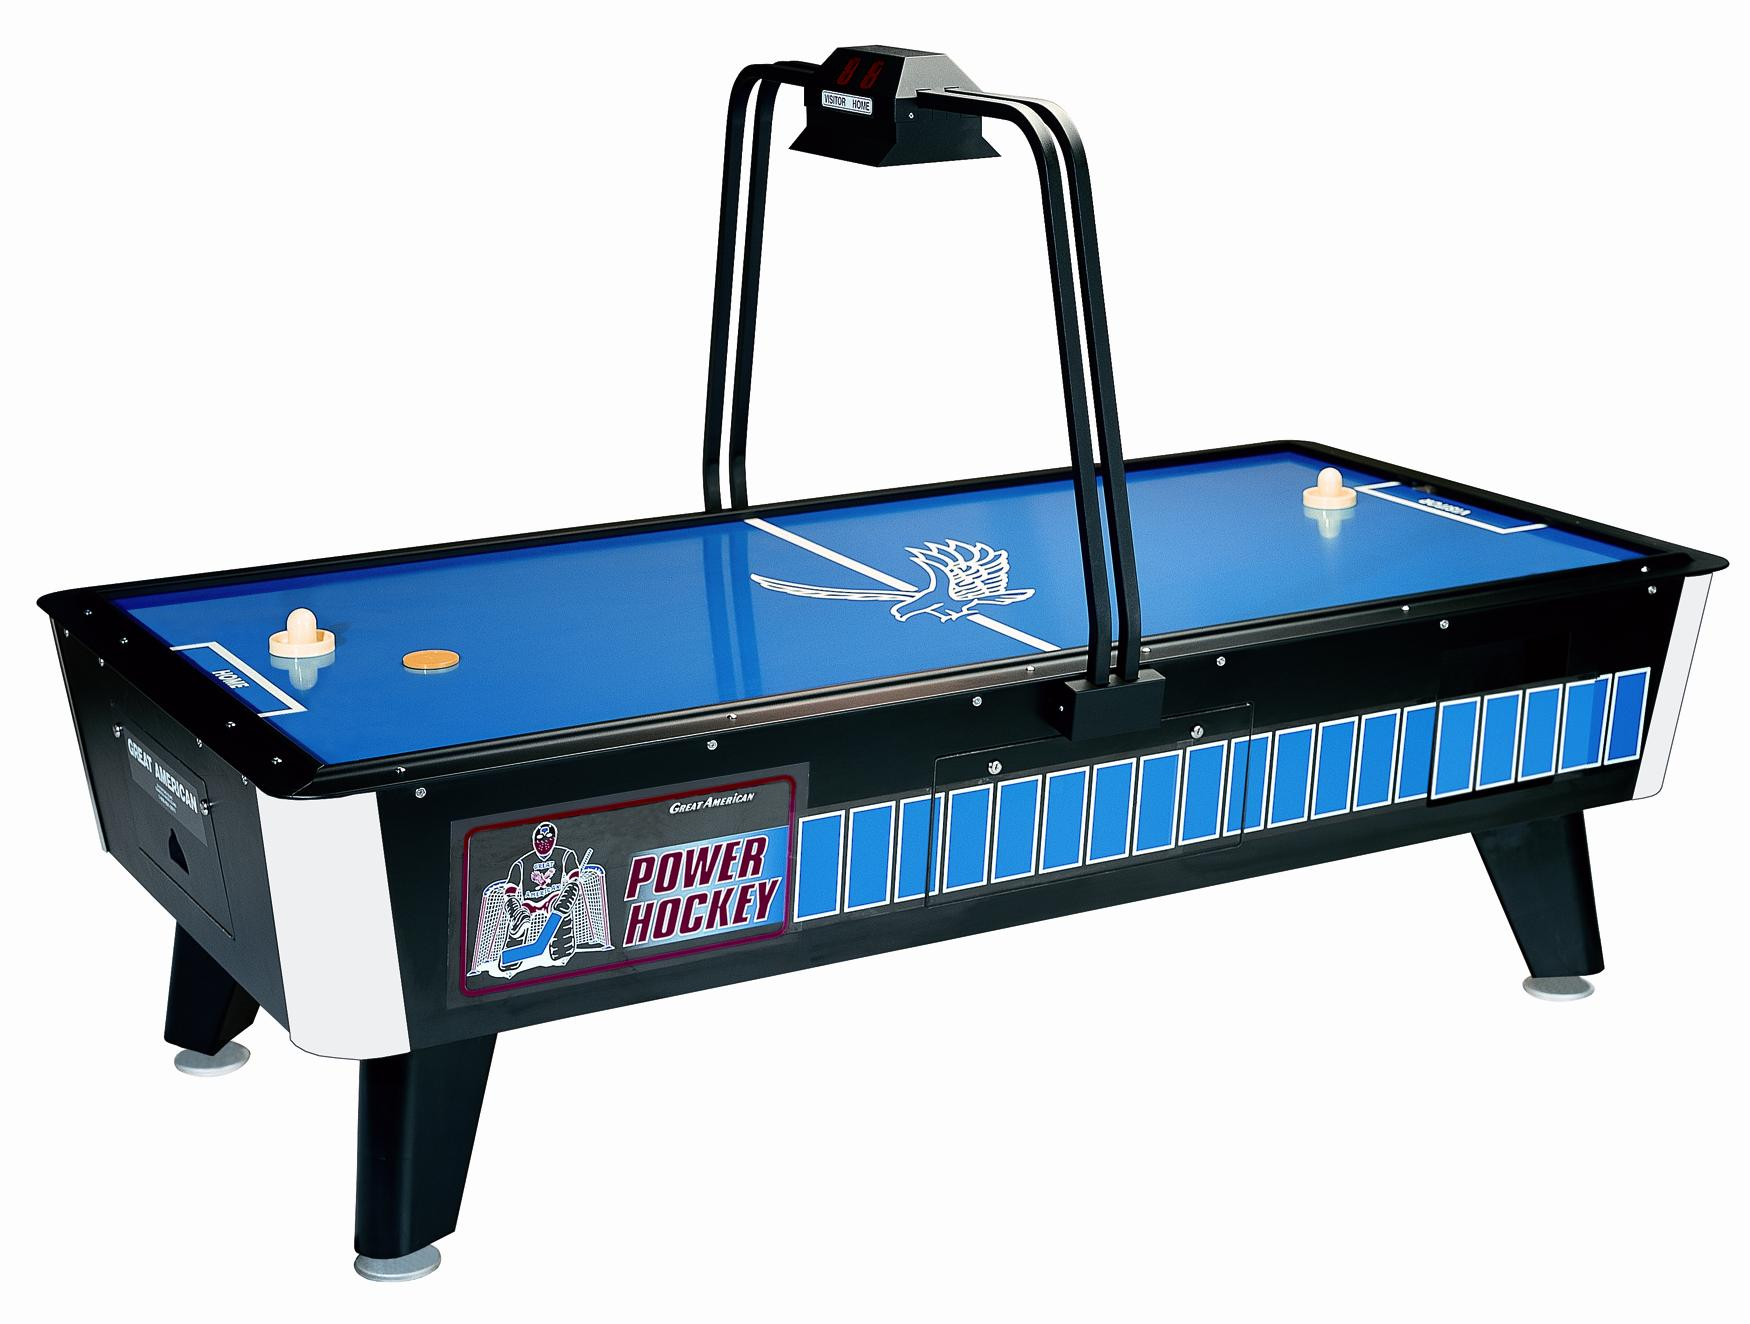 Air hockey table troubleshooting guidegame tables and more power hockey table with overhead scoreboard greentooth Image collections